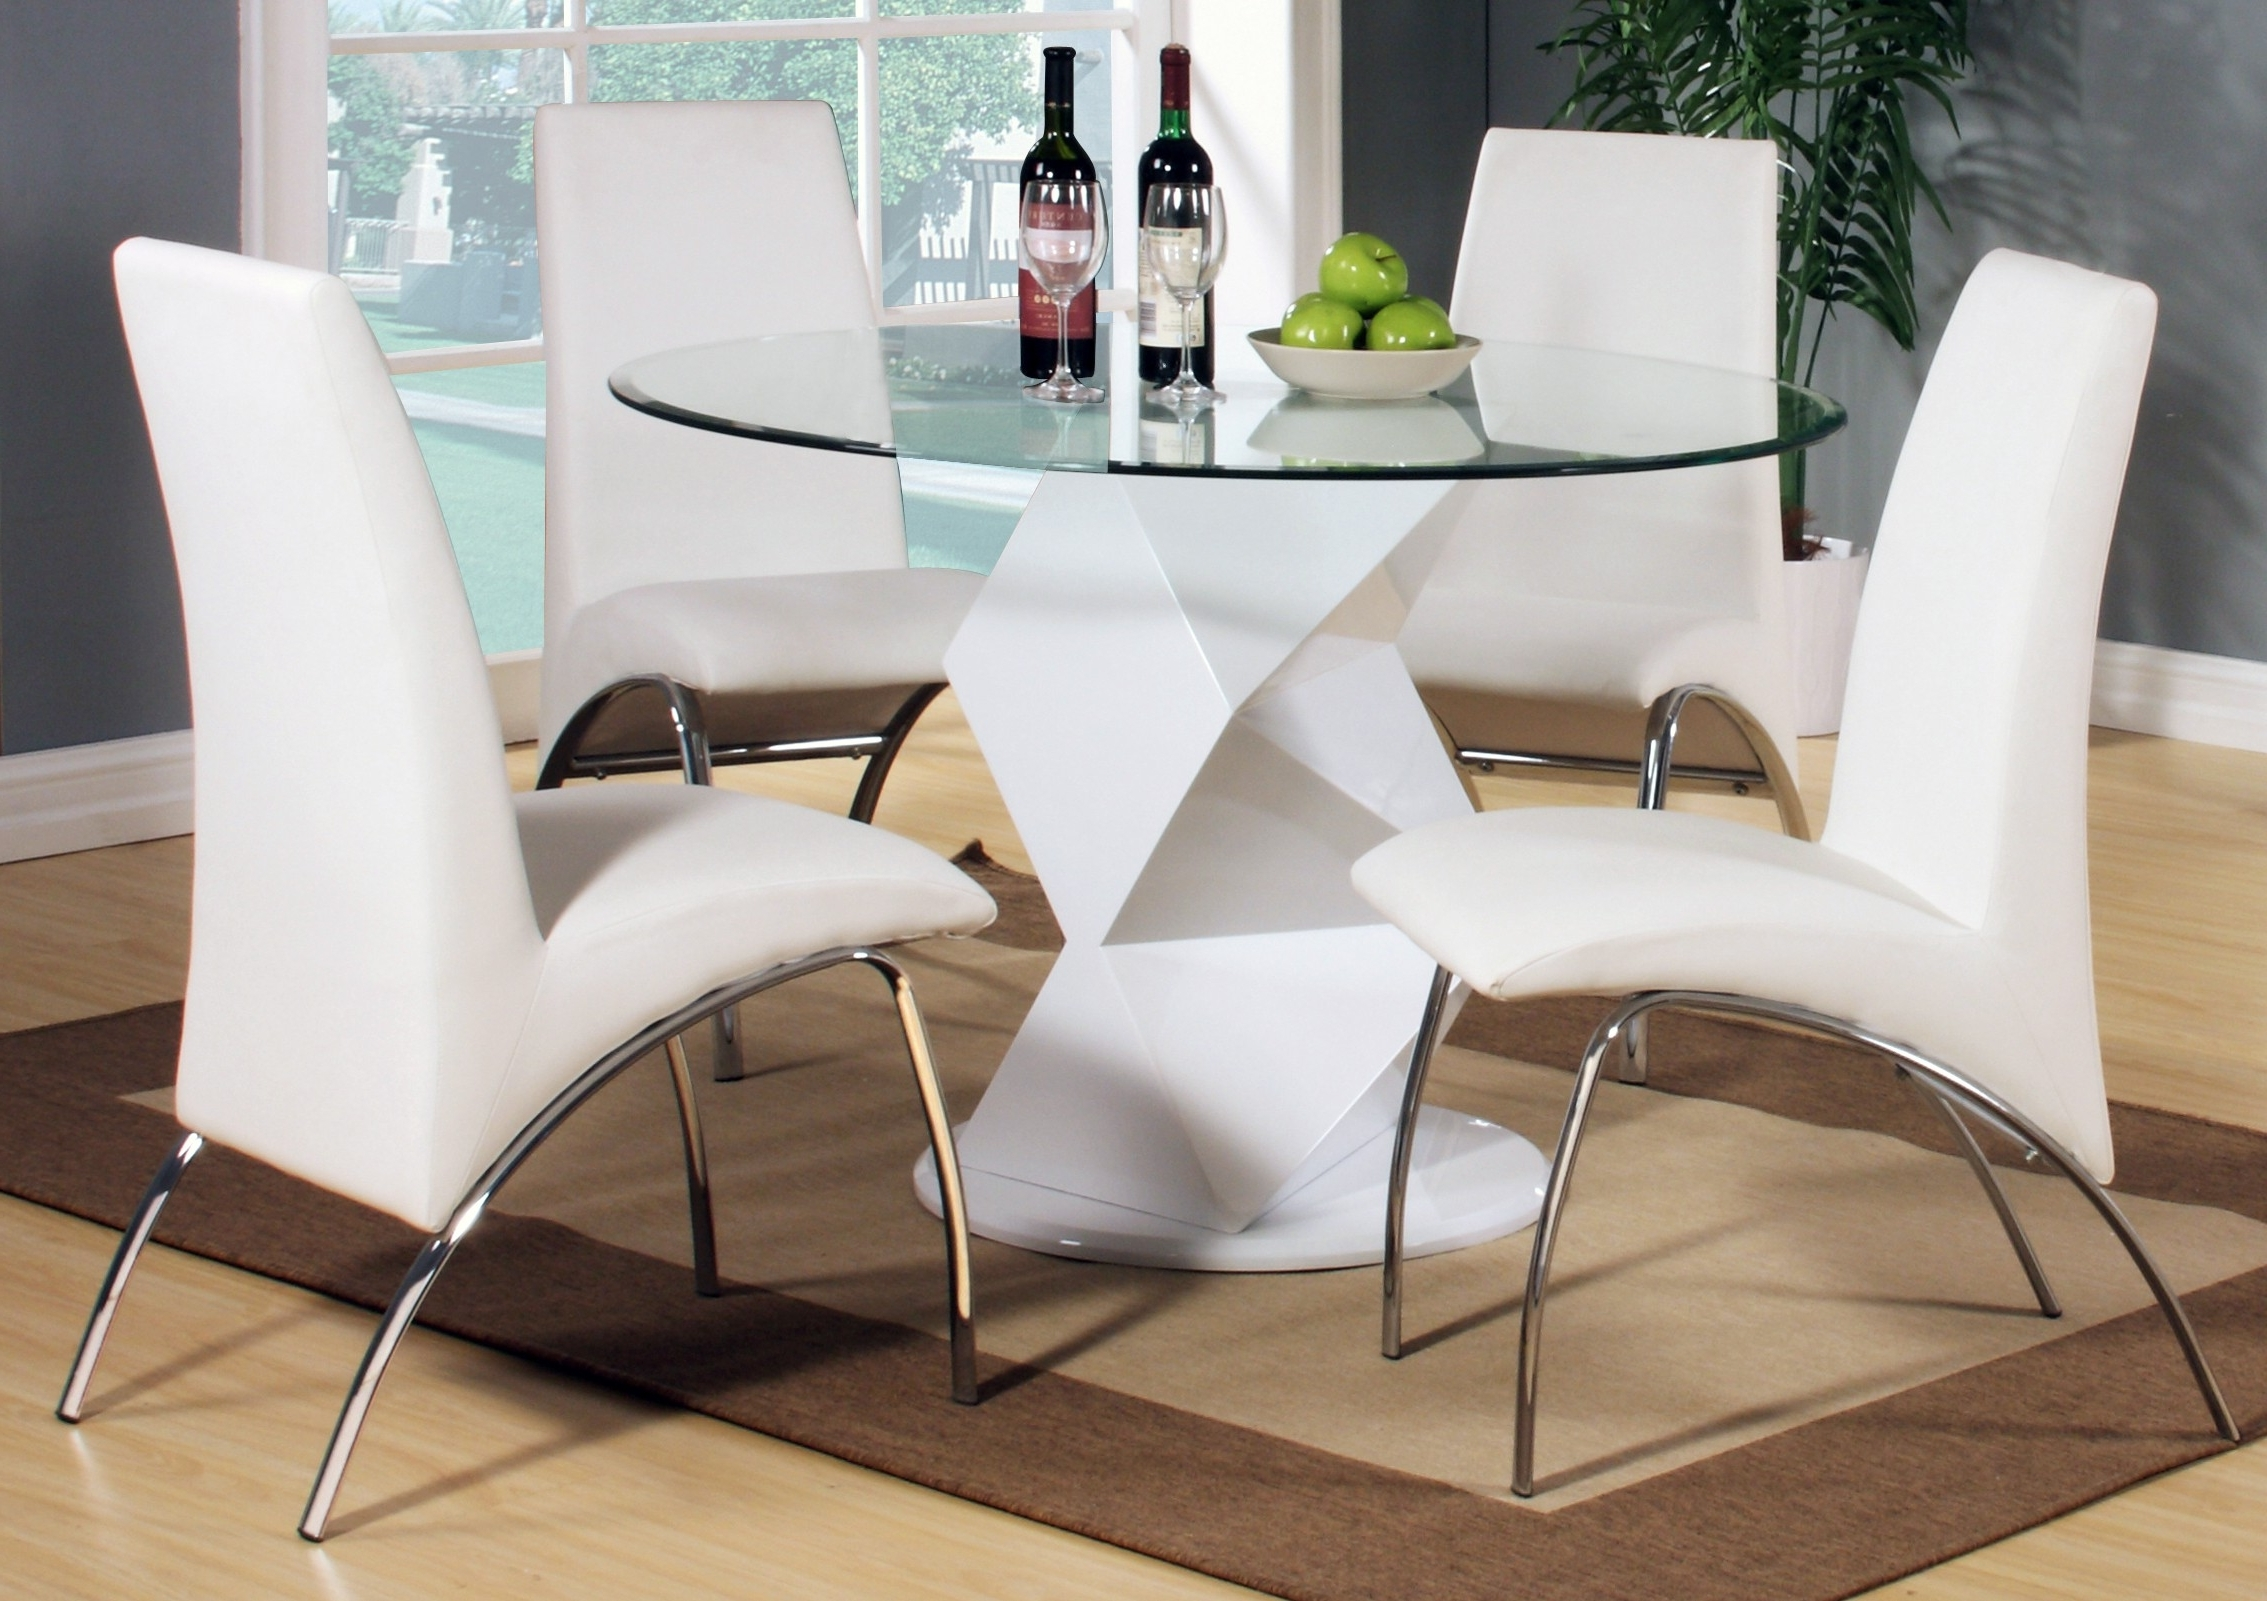 Popular White High Gloss Dining Tables Inside Finn White High Gloss Round Dining Table Set 4 Seater (Gallery 18 of 25)